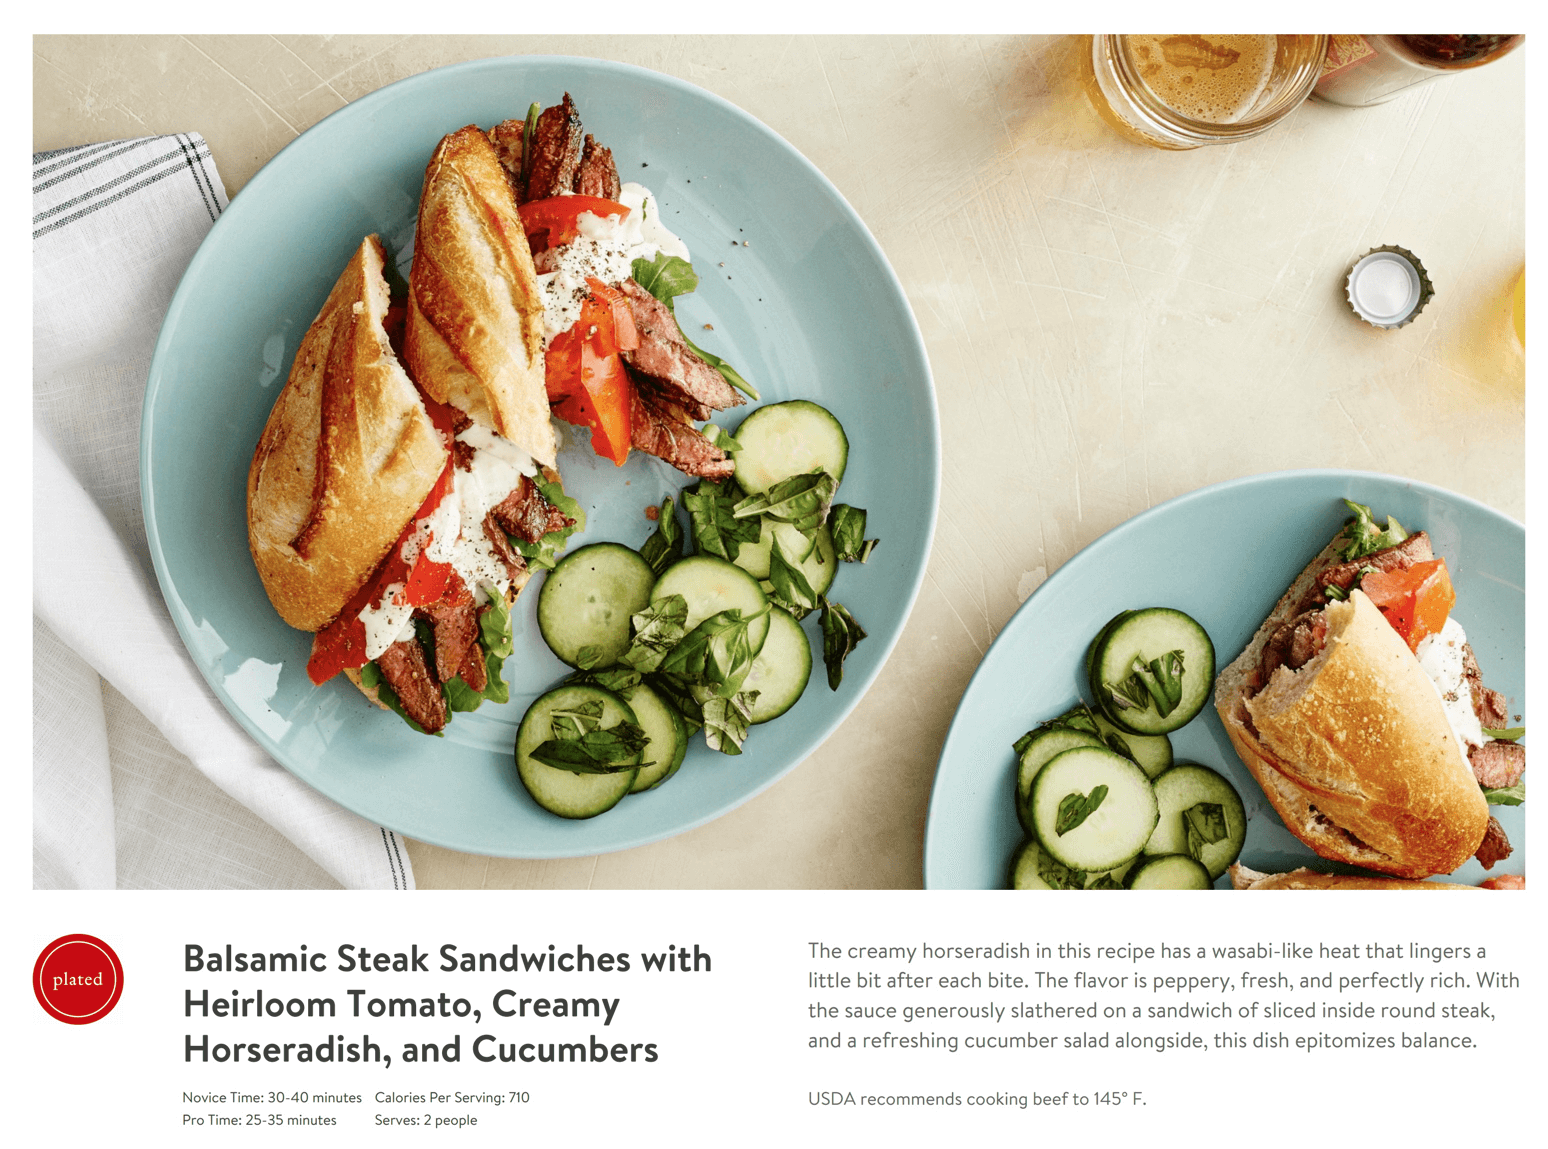 Plated meal subscription box review coupon august 8 2015 plated sends weekly dinner kits with high quality ingredients and chef created recipes each week youll choose from a variety of dishes that range from forumfinder Images